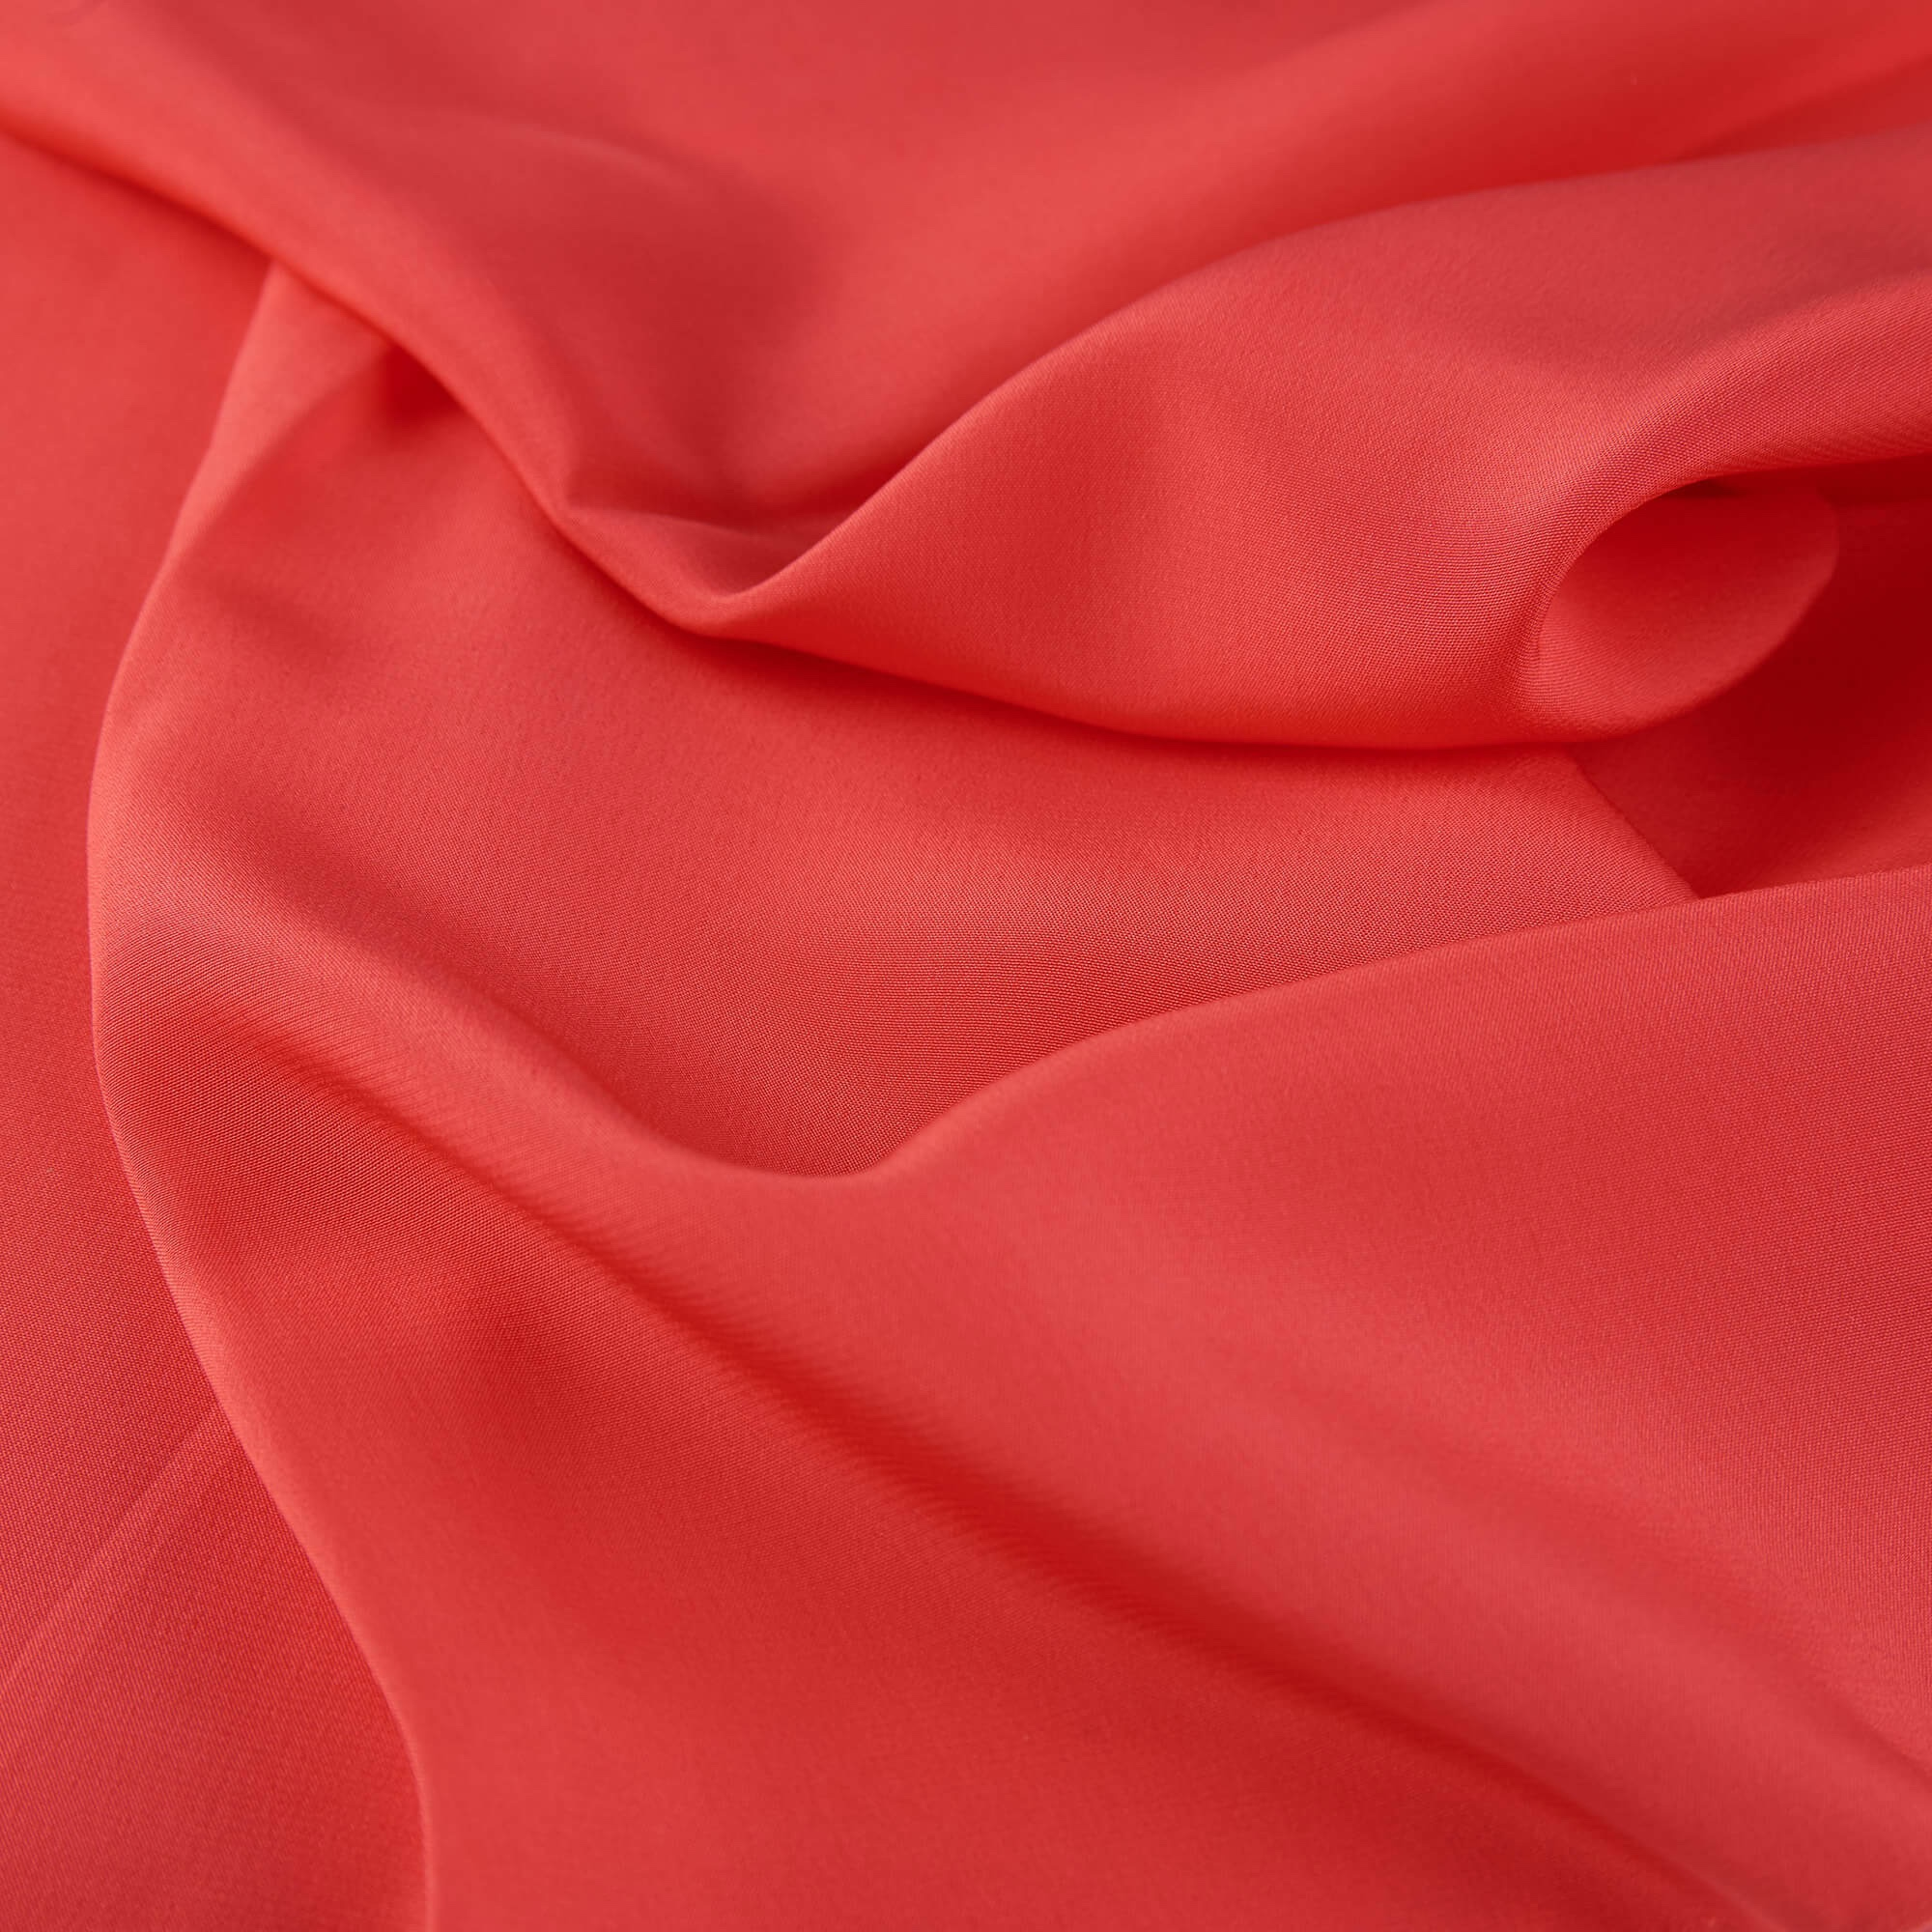 coral pink silk crepe fabric16 mommes